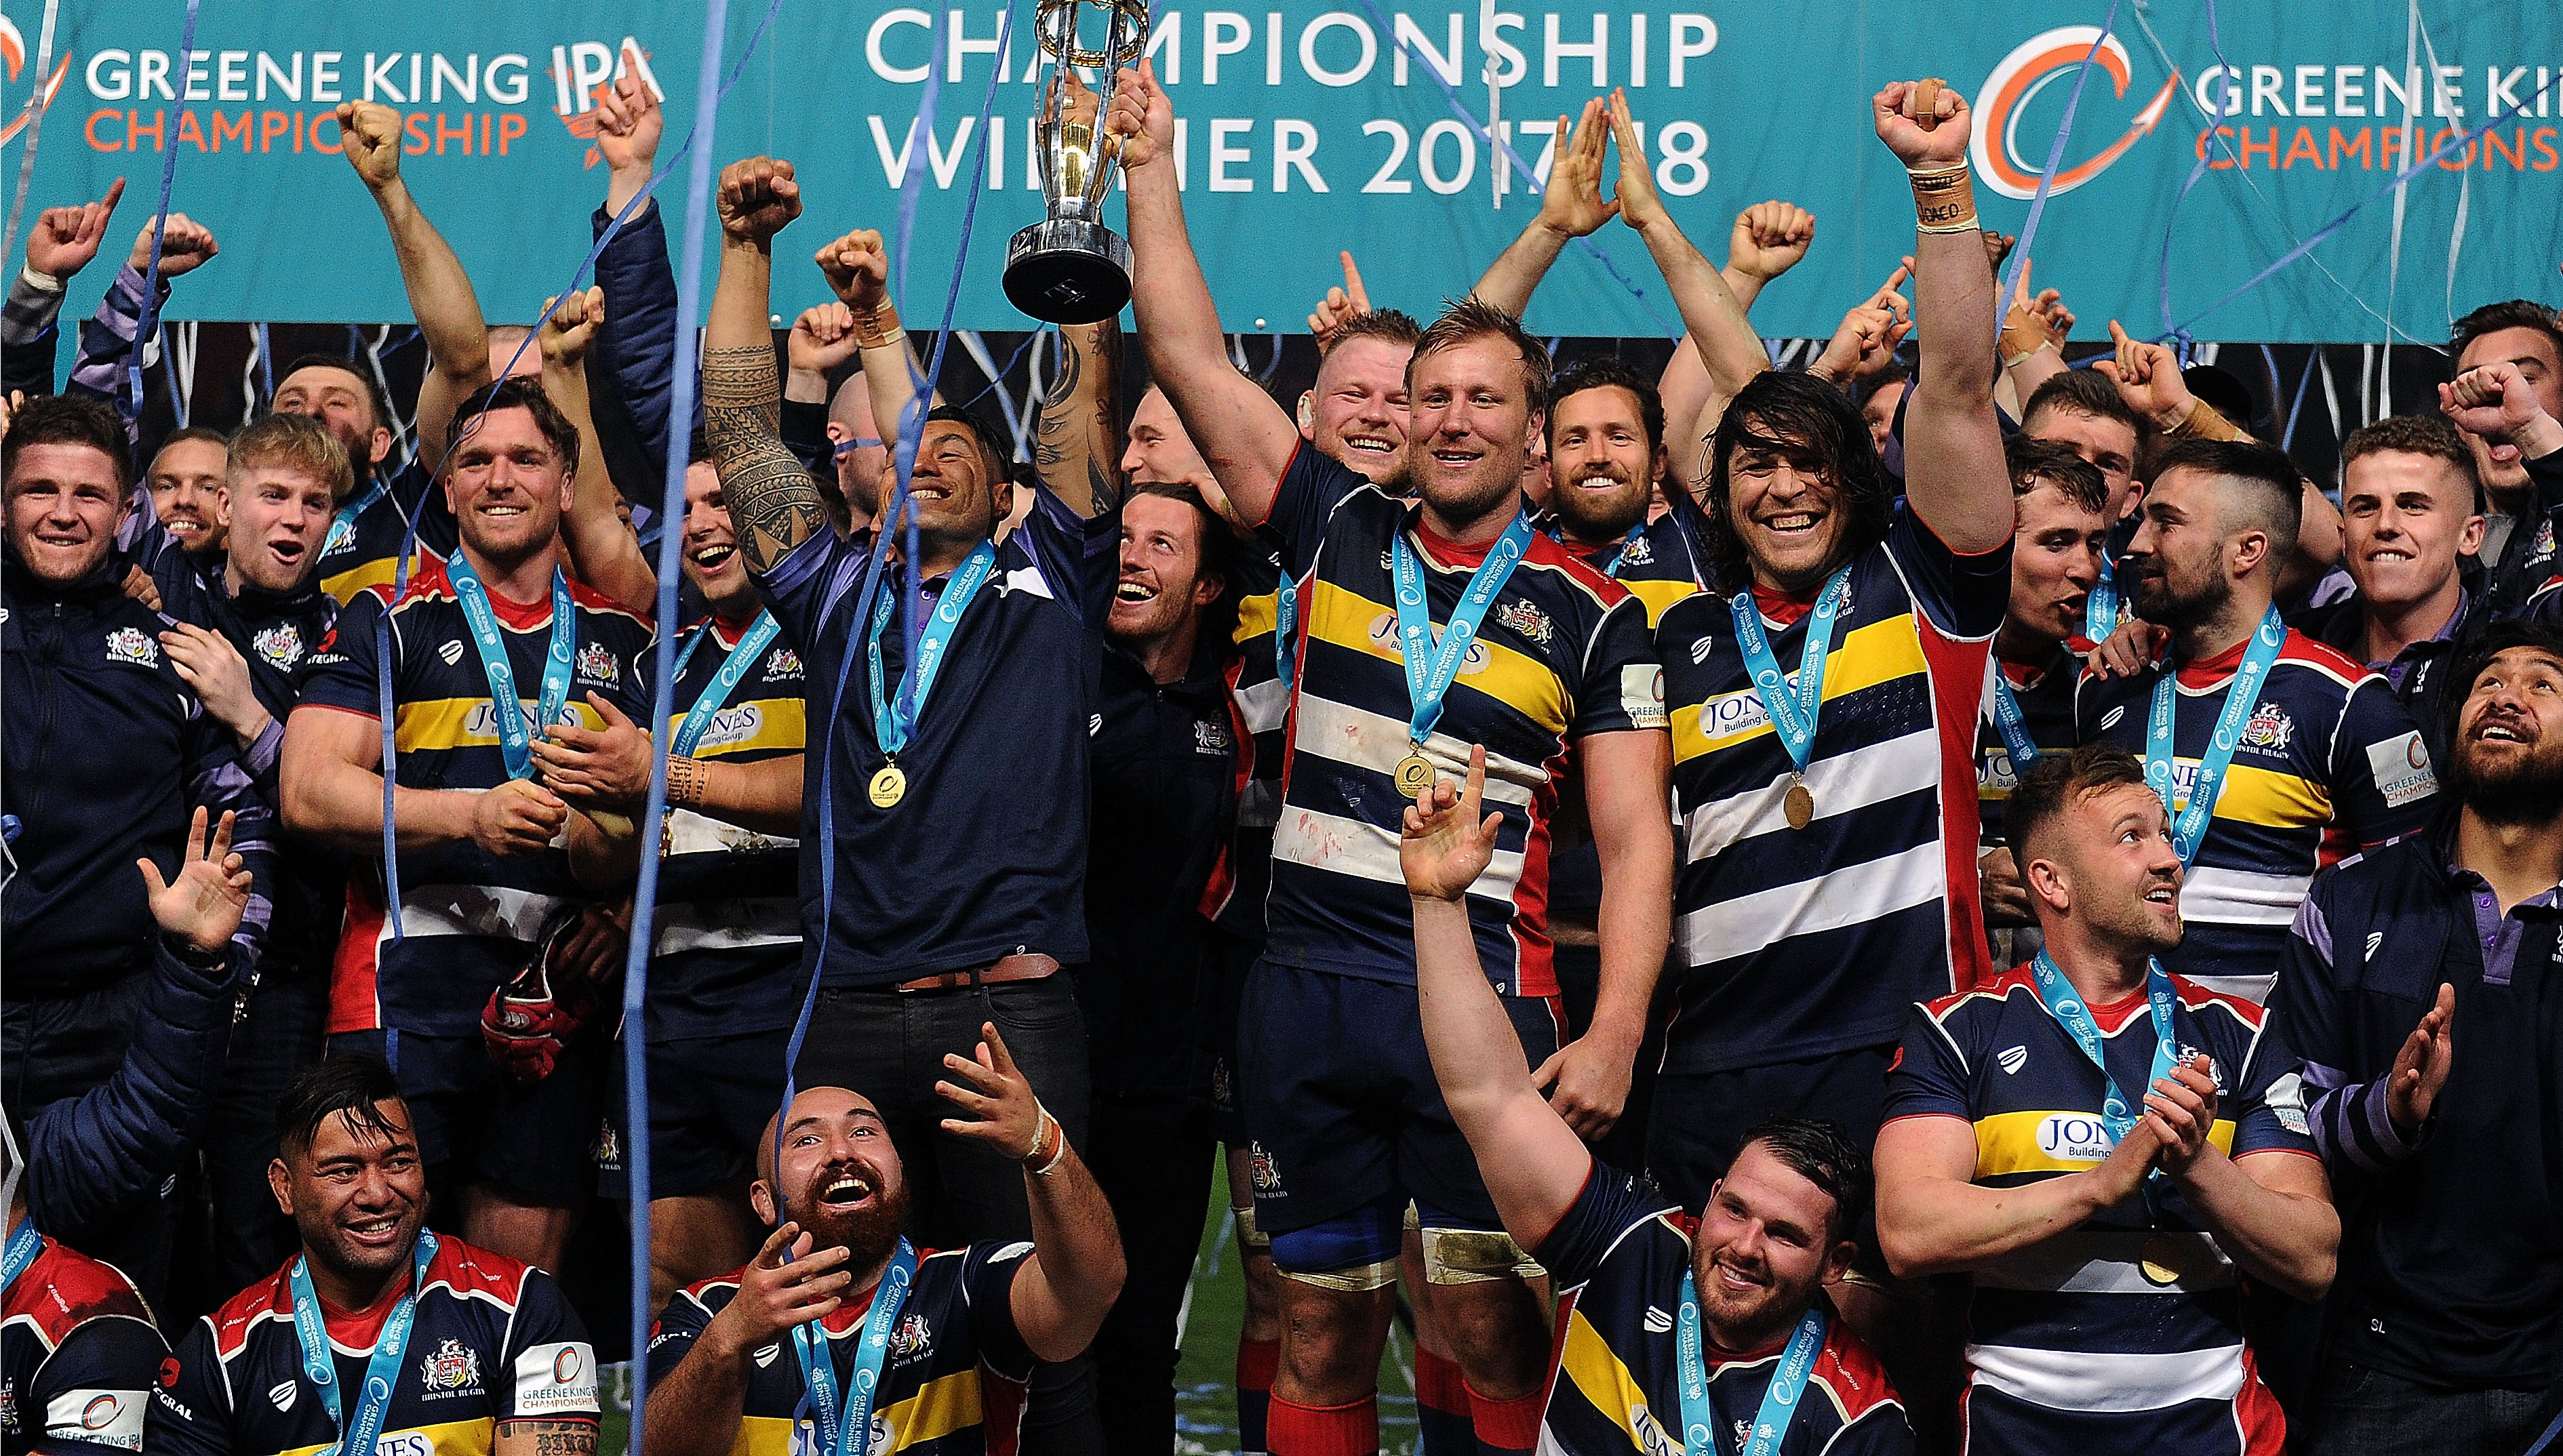 d315977591e Rugby news: Bristol to open 2018-19 Gallagher Premiership at home ...